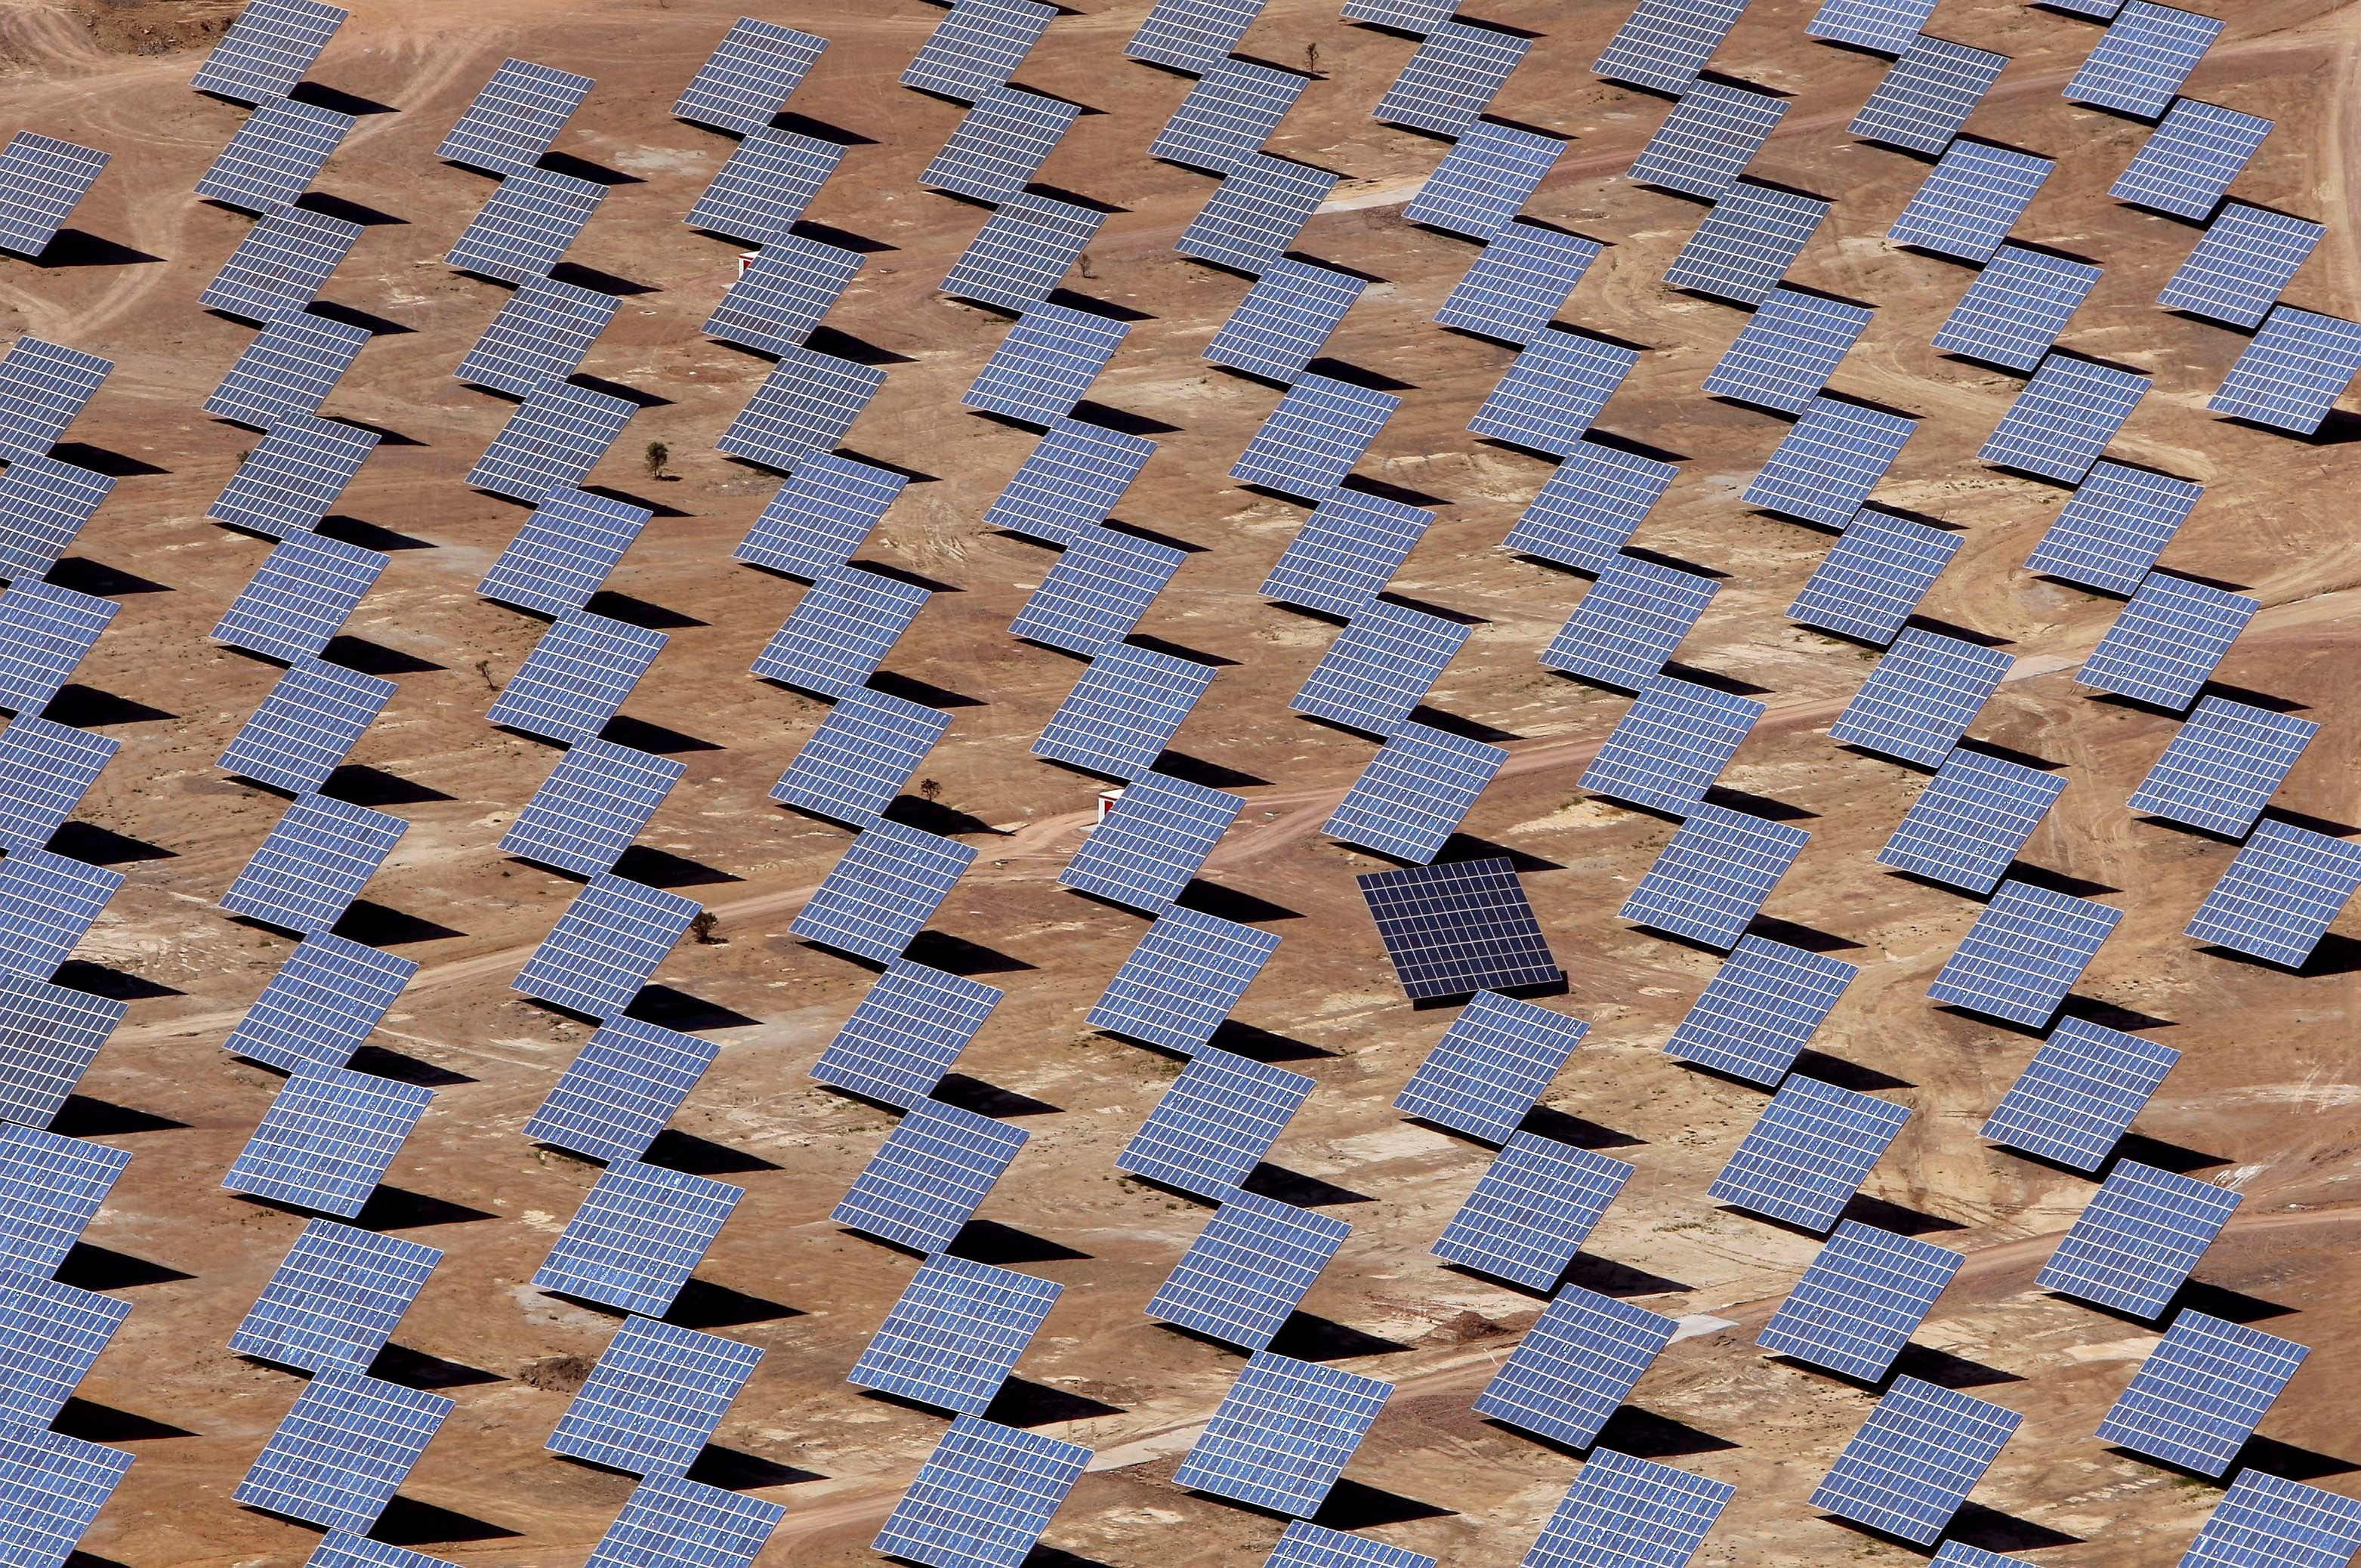 Solar panels are seen at a power plant in Amareleja, southern Portugal, May 1, 2008. REUTERS/Jose Manuel Ribeiro (PORTUGAL)/File Photo